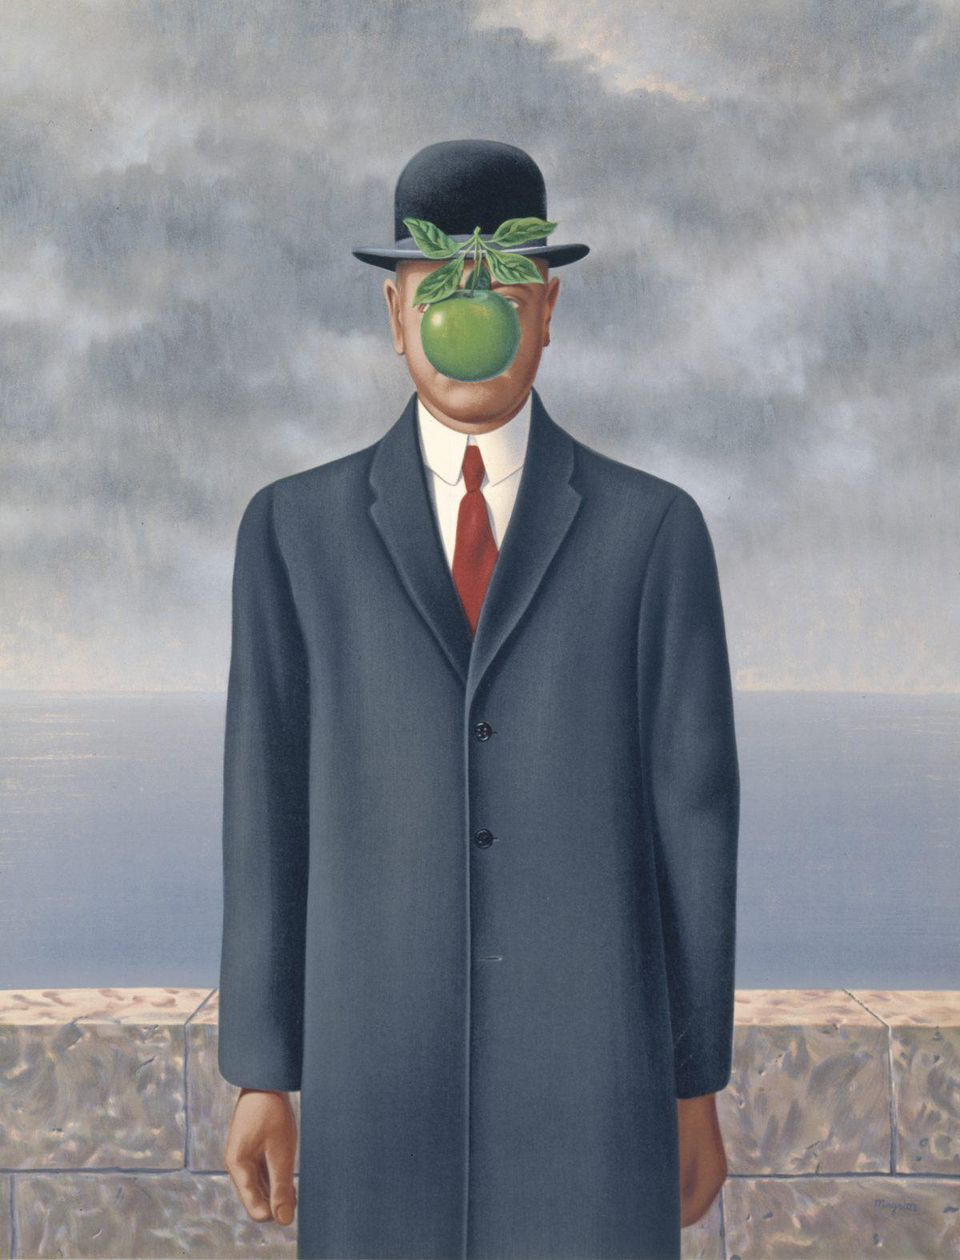 The Son of Man: Magritte's Famous Contribution to Surrealism